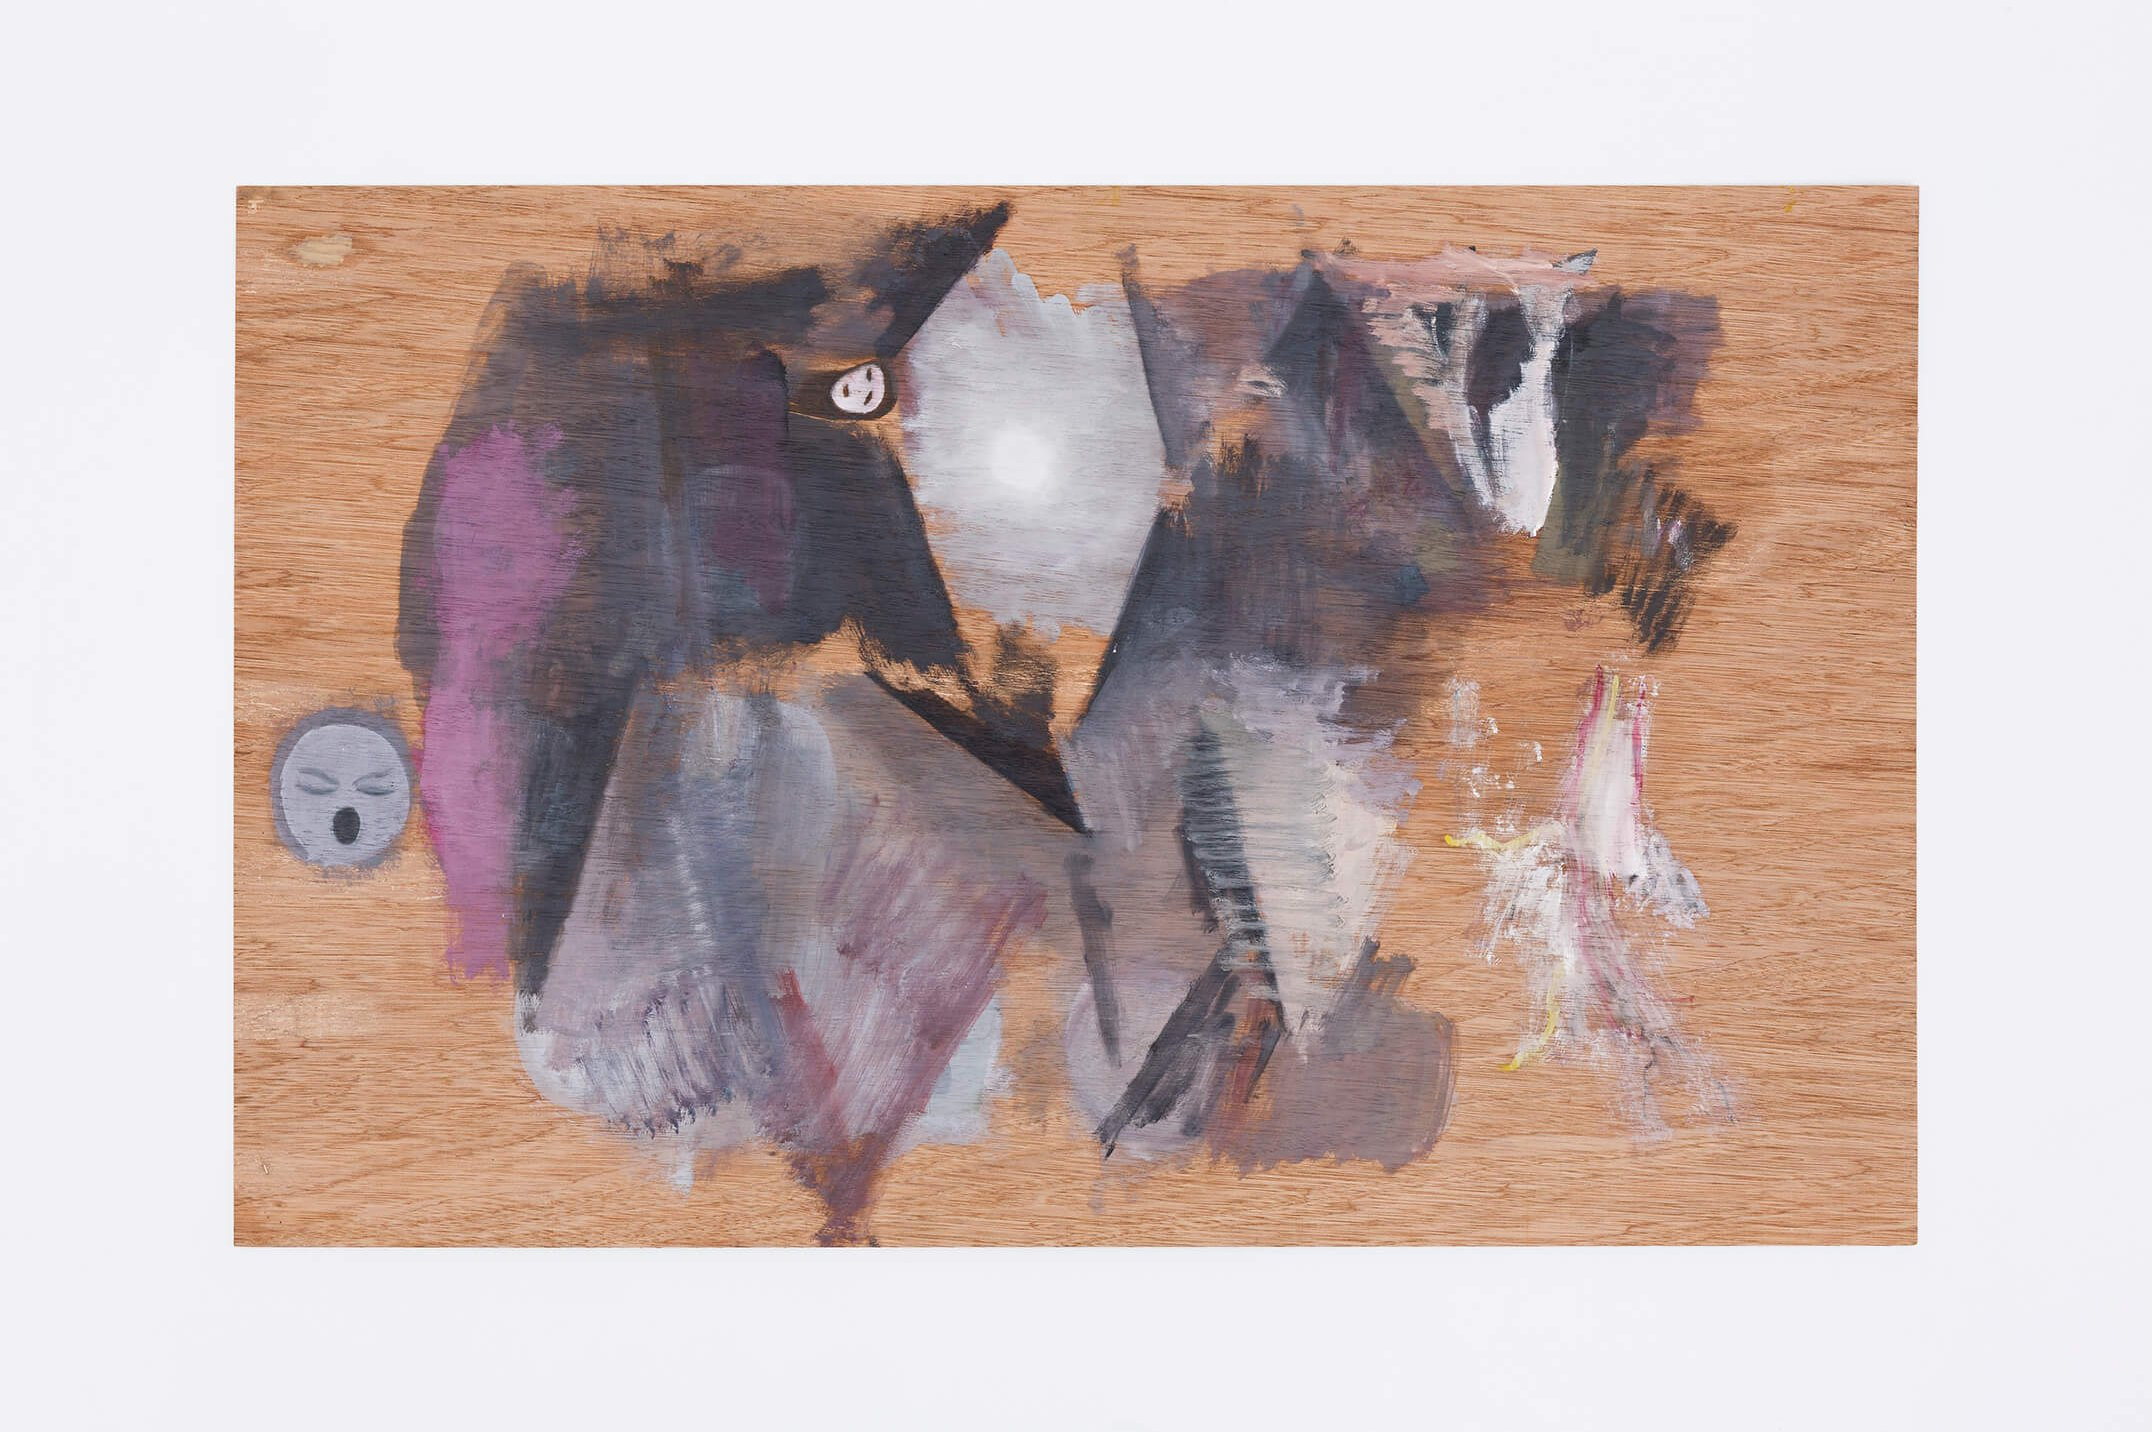 Guillermo Kuitca, <em>untitled</em>, 2013, oil on wood, 53,5 × 85 cm - Mendes Wood DM